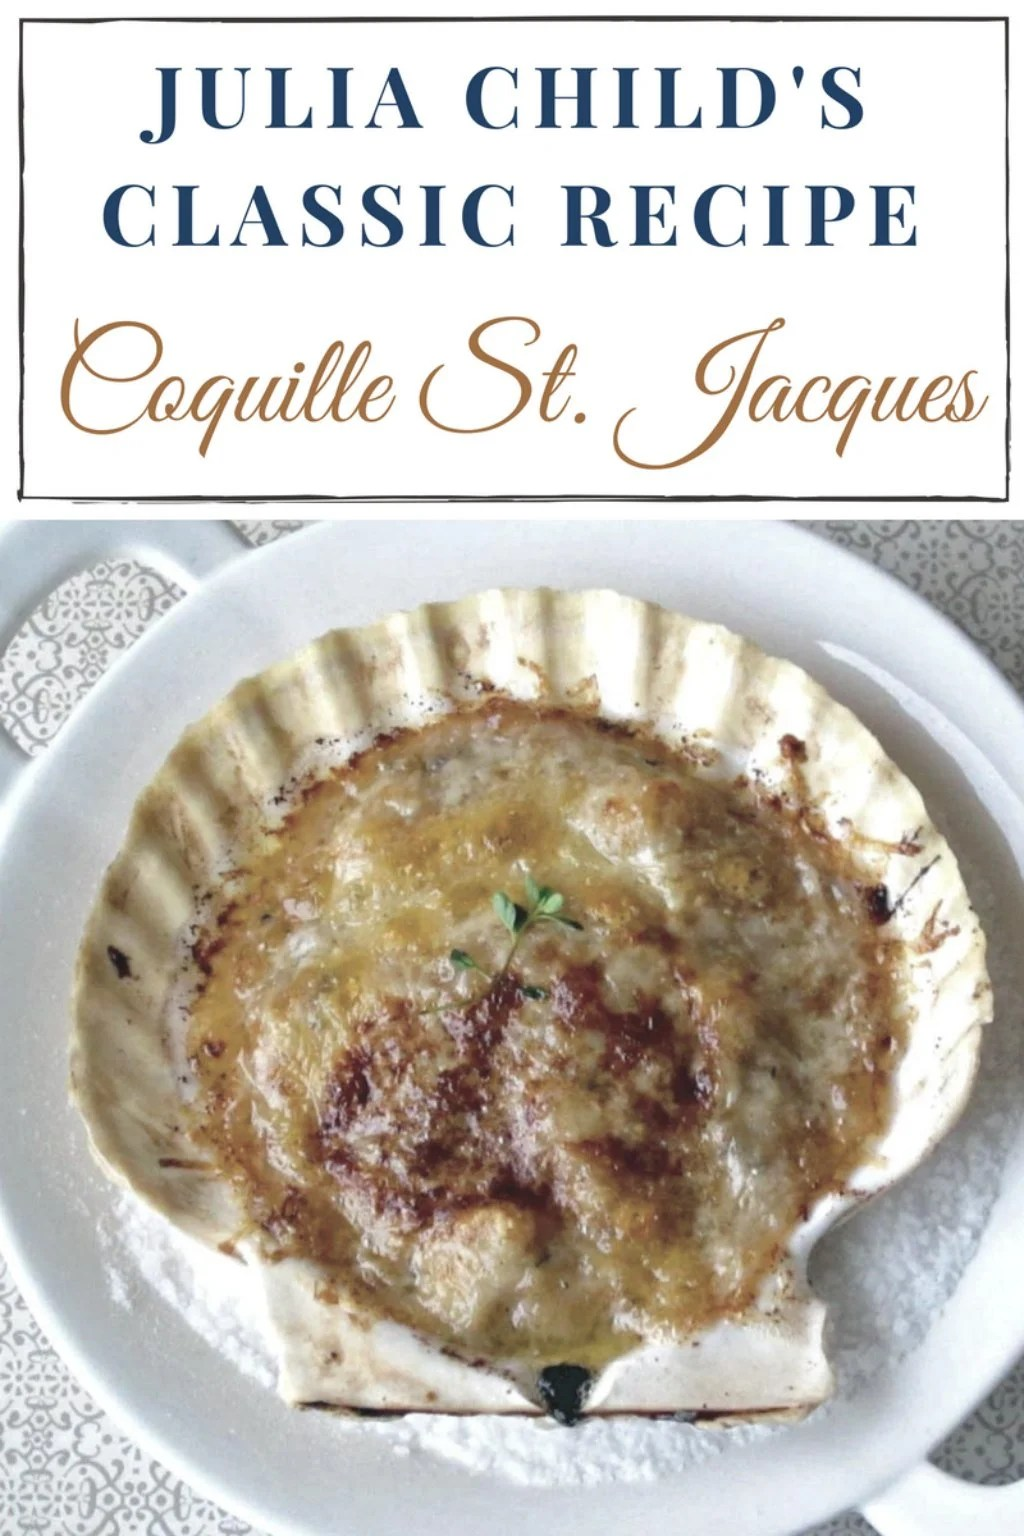 Julia Child's Classic Recipe for Coquilles St. Jacques À La Provençale, or Scallops Gratinéed with Wine, Garlic, and Herbs.